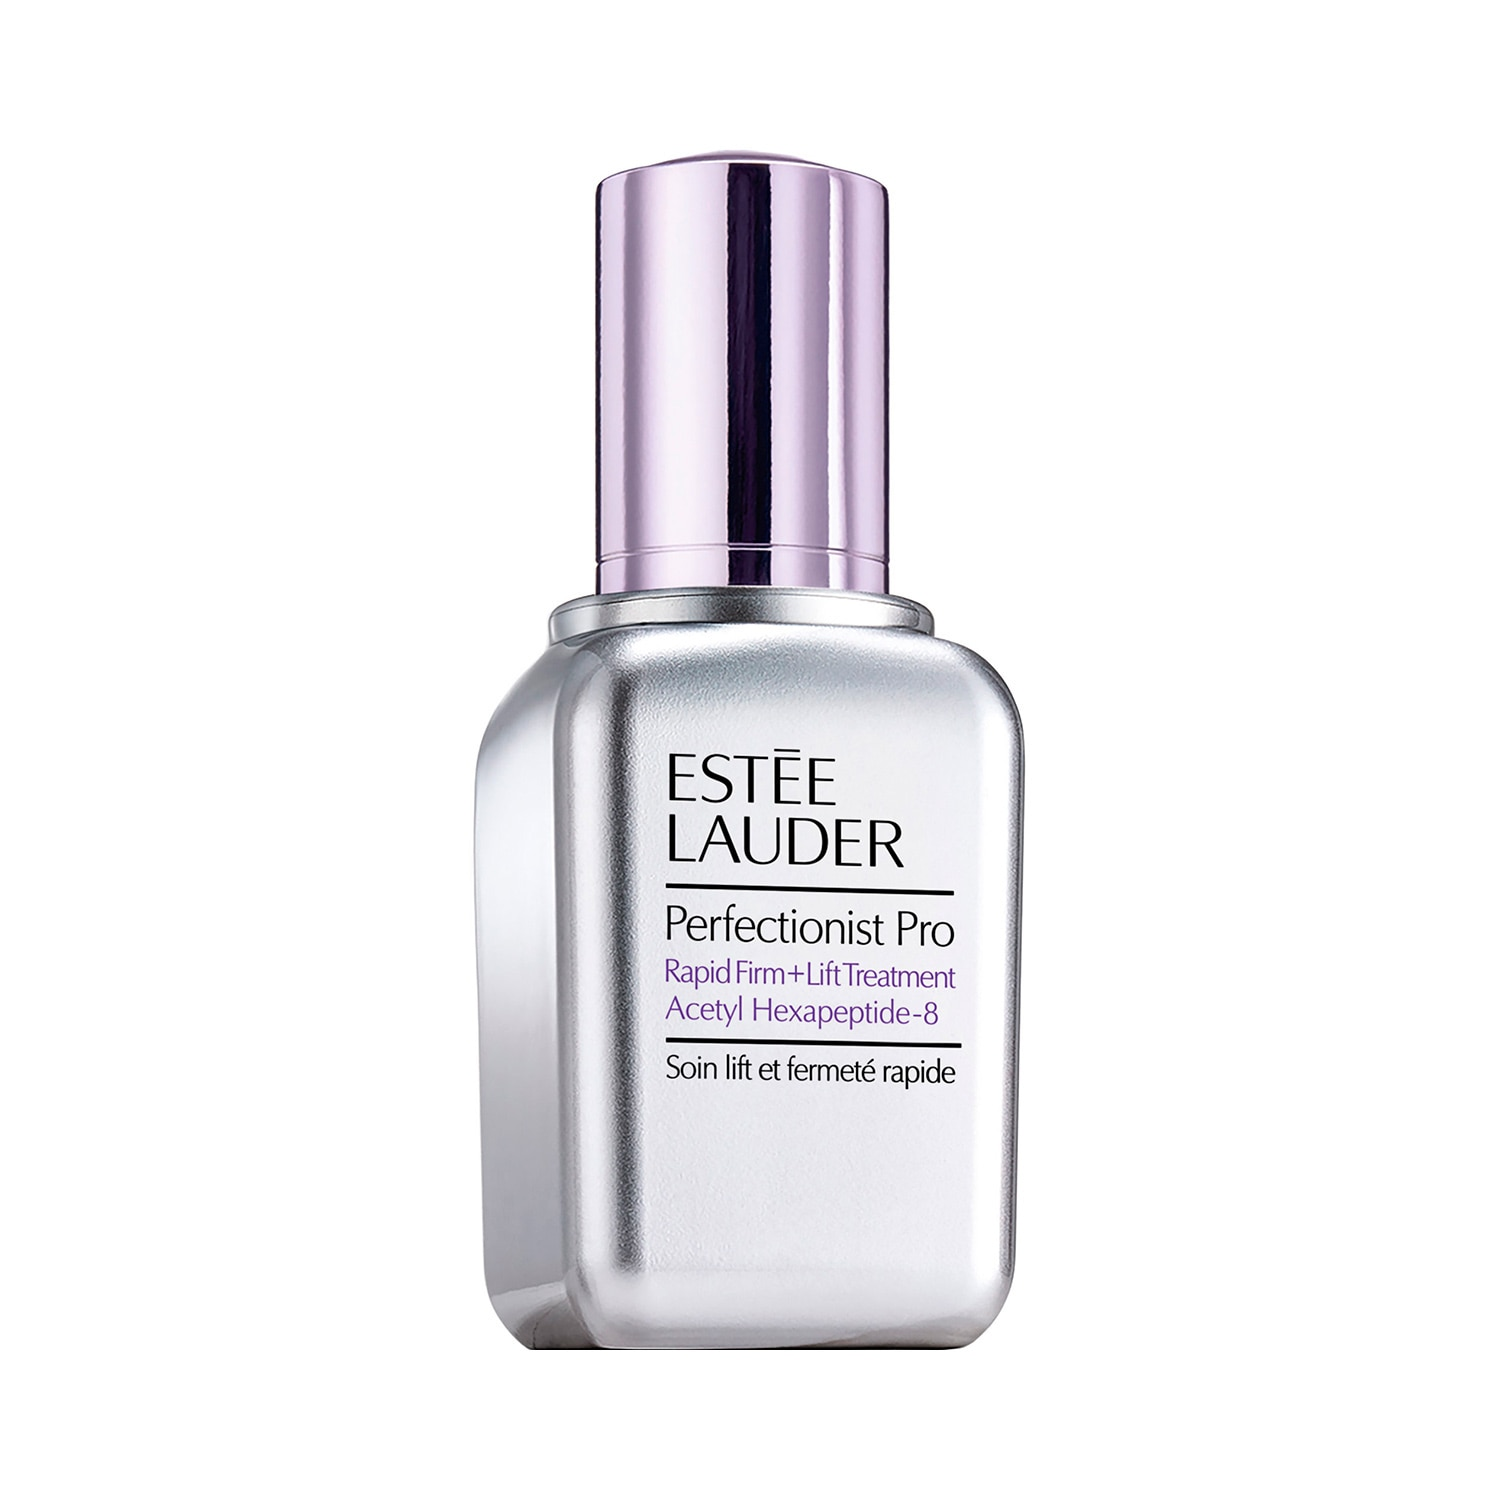 PERFECTIONIST PRO SUERO PERFECTIONIST PRO FIRMEZA INMEDIATA MAS TRATAMIENTO LIFT